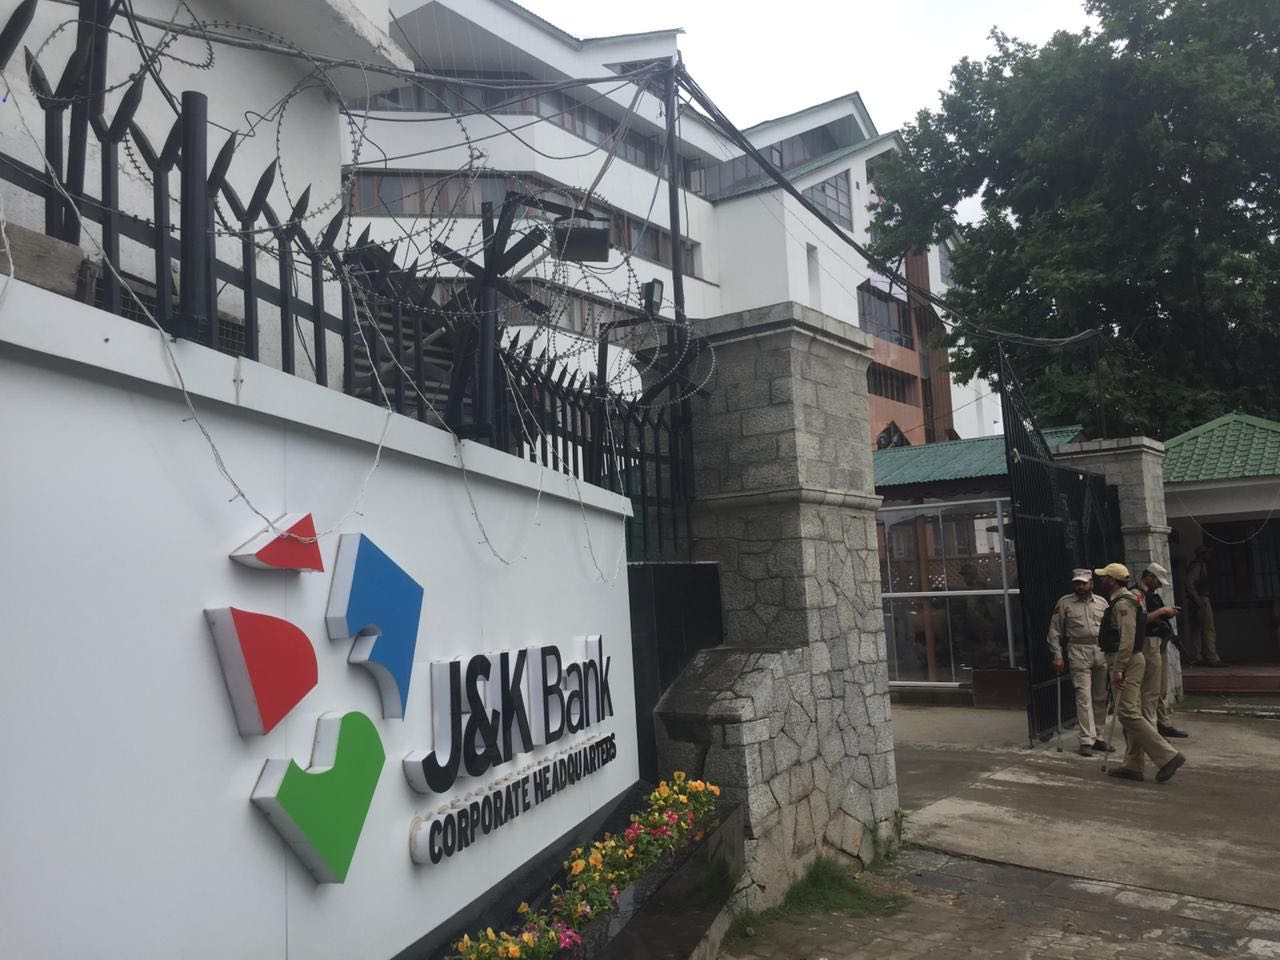 J&K Bank: The Jammu and Kashmir government on June 8 removed J&K Bank Chairman Parvez Ahmad and appointed its executive president R K Chibber as an interim chairman. (Image: CNBC-TV18)